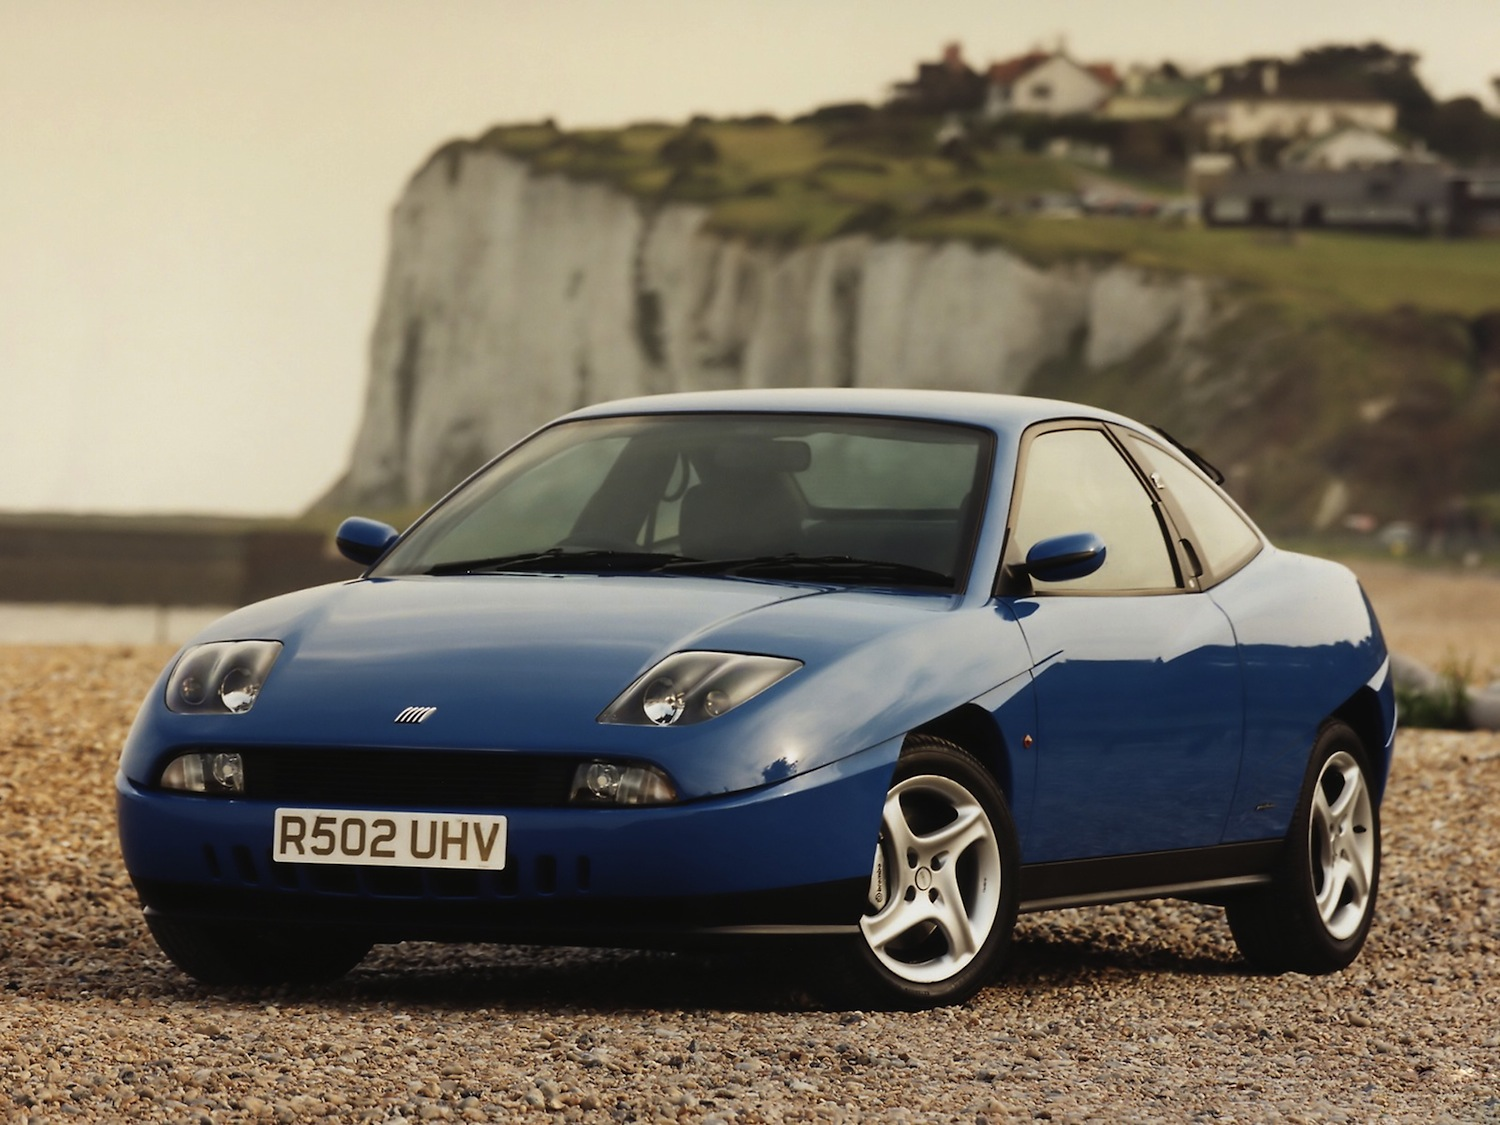 The Fiat Coupe Turbo's styling is every bit as striking (and divisive) as it was at the tail end of the '90s